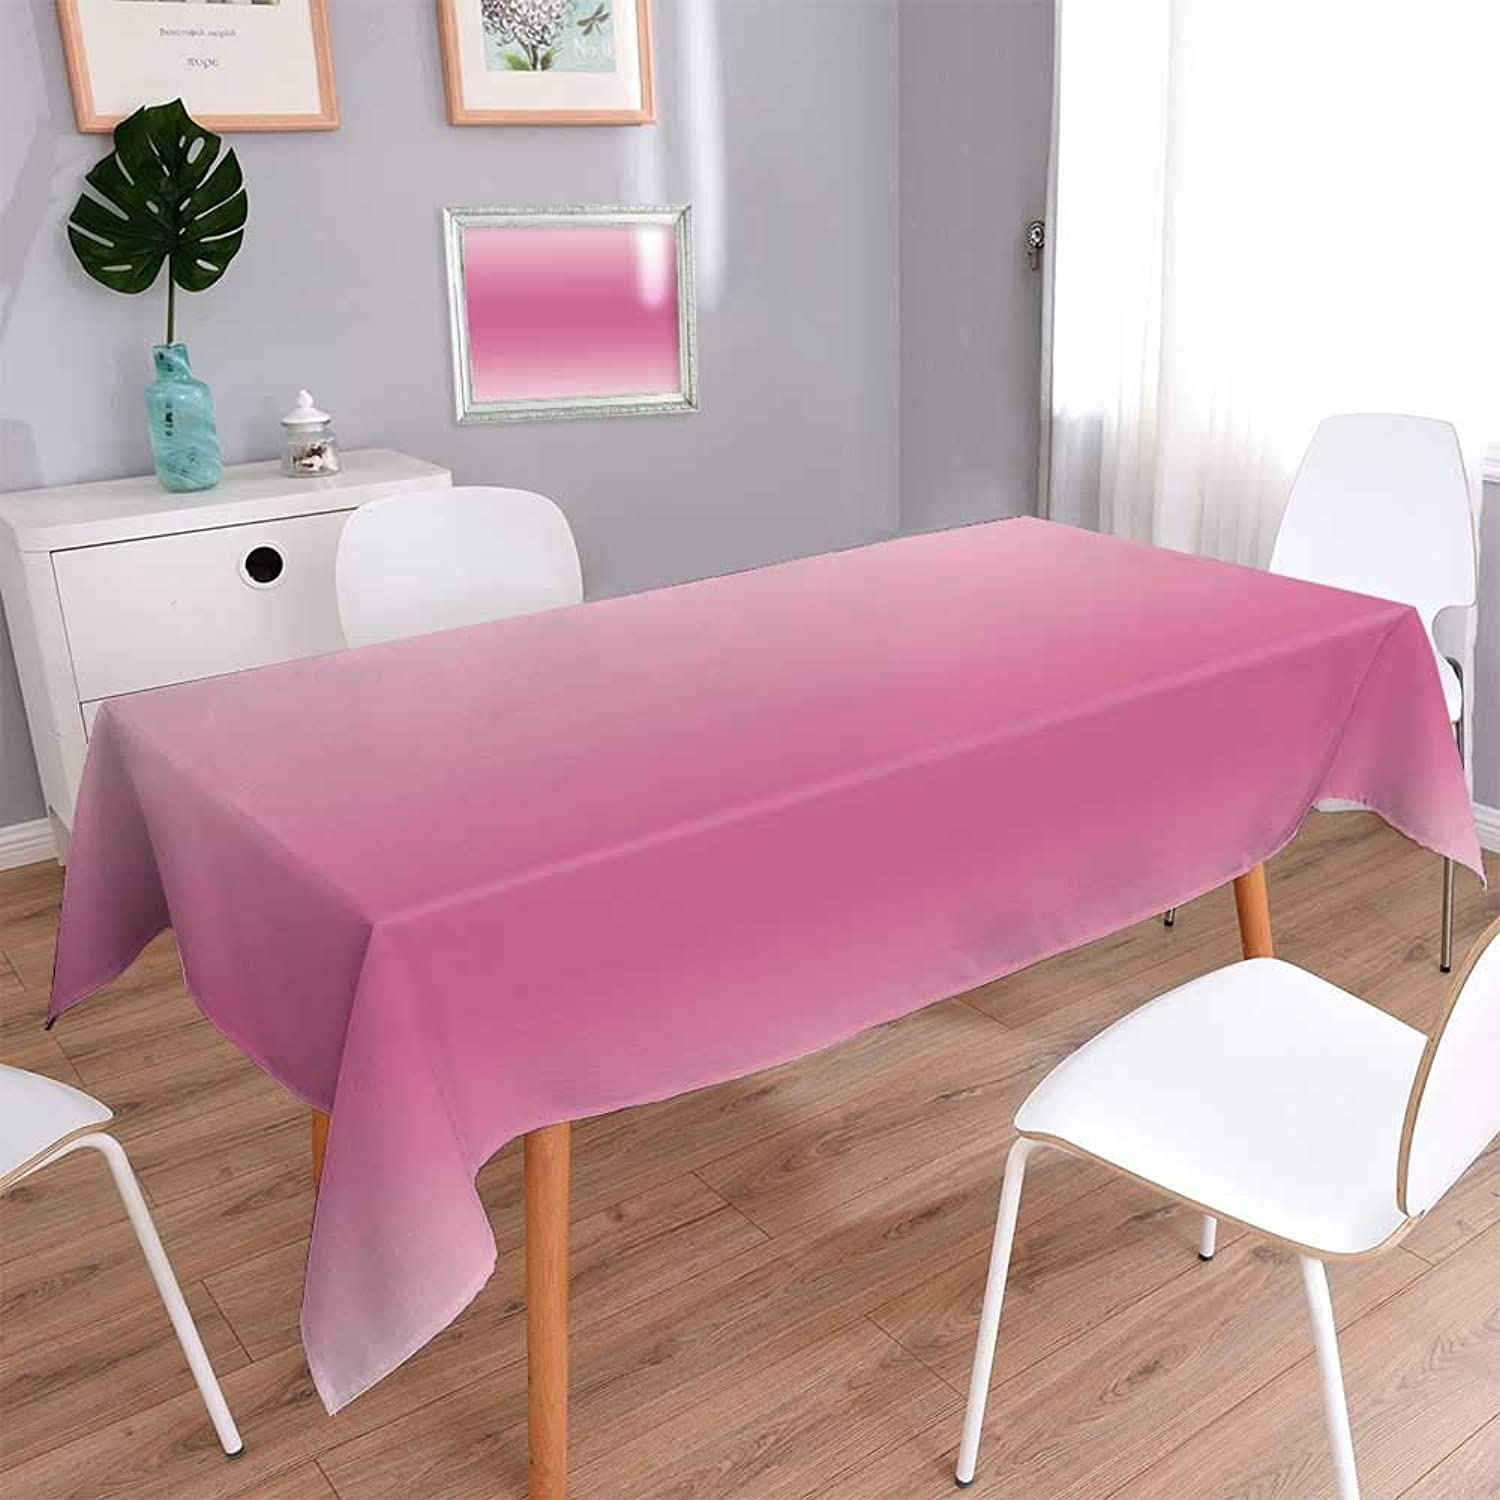 PINAFORE HOME 100% Cotton, Eco-Friendly and Safe Carpet mbre Fairytale Candy Inspired Girly Design ations Digital Modern Pink Linen Cotton Tablecloths for Kitchen Room Rectangle, 70 x 120 Inch